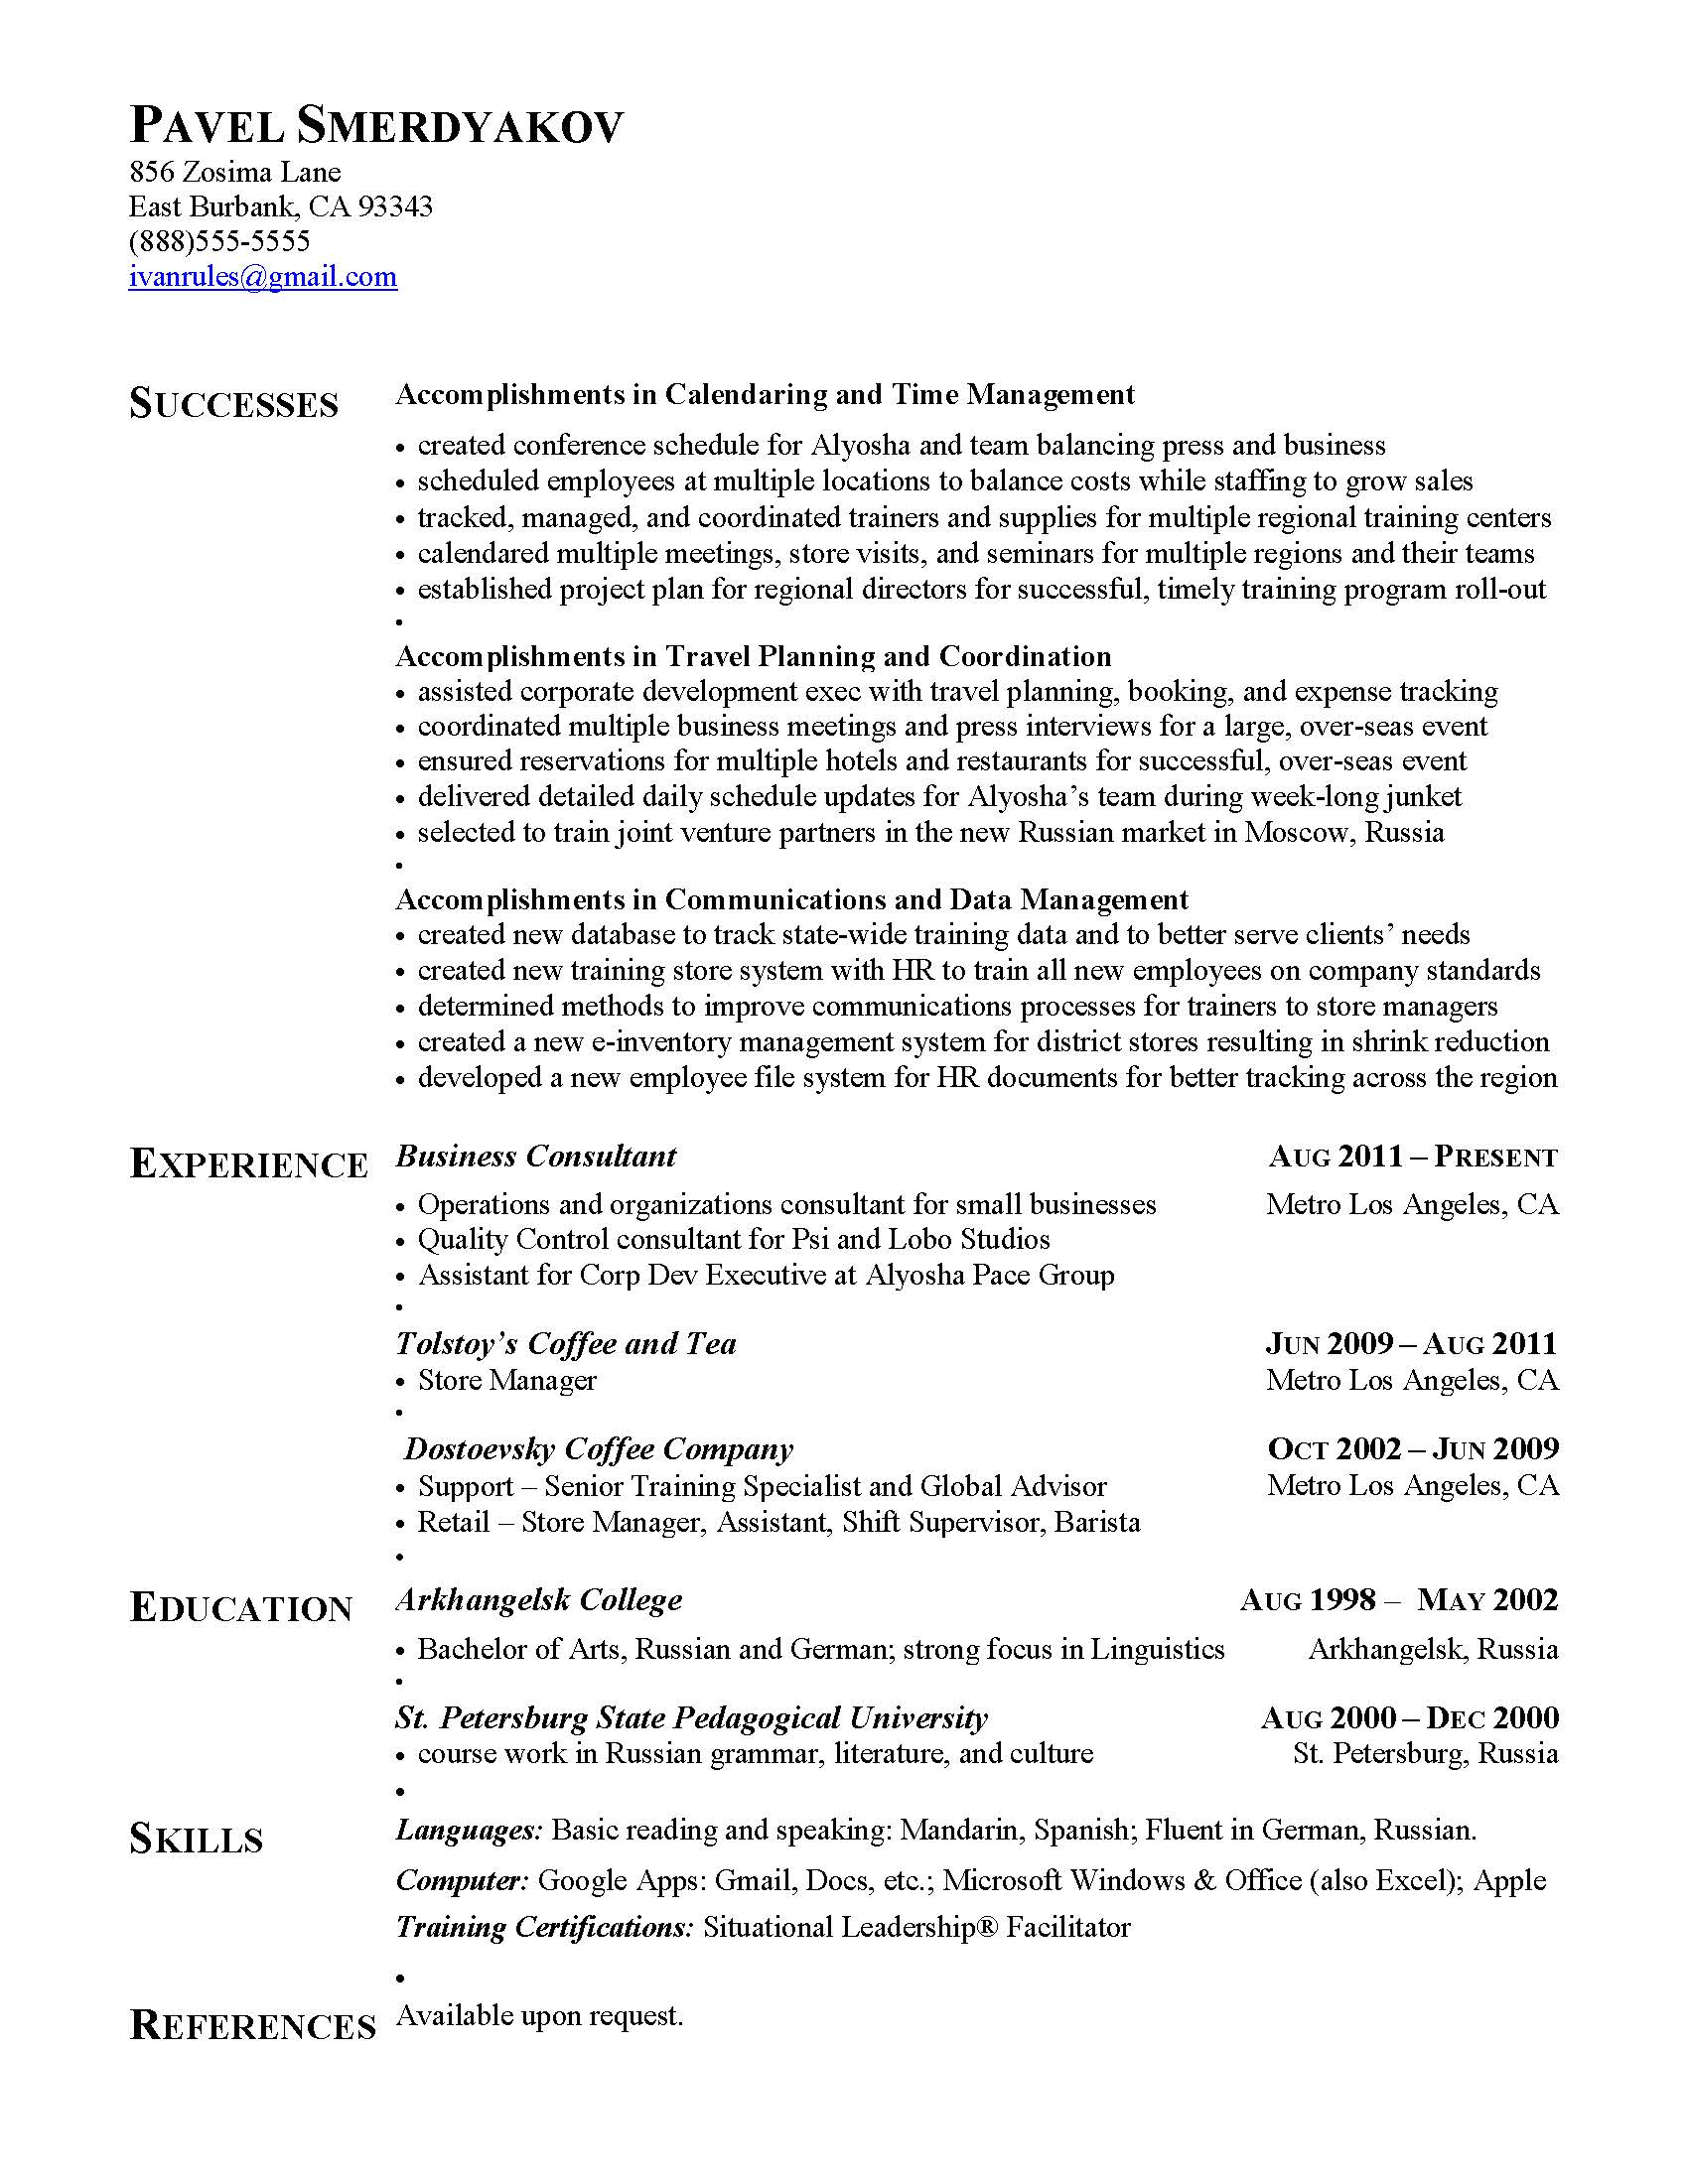 Writing Achievements In Resume Sample. sample resume with ...